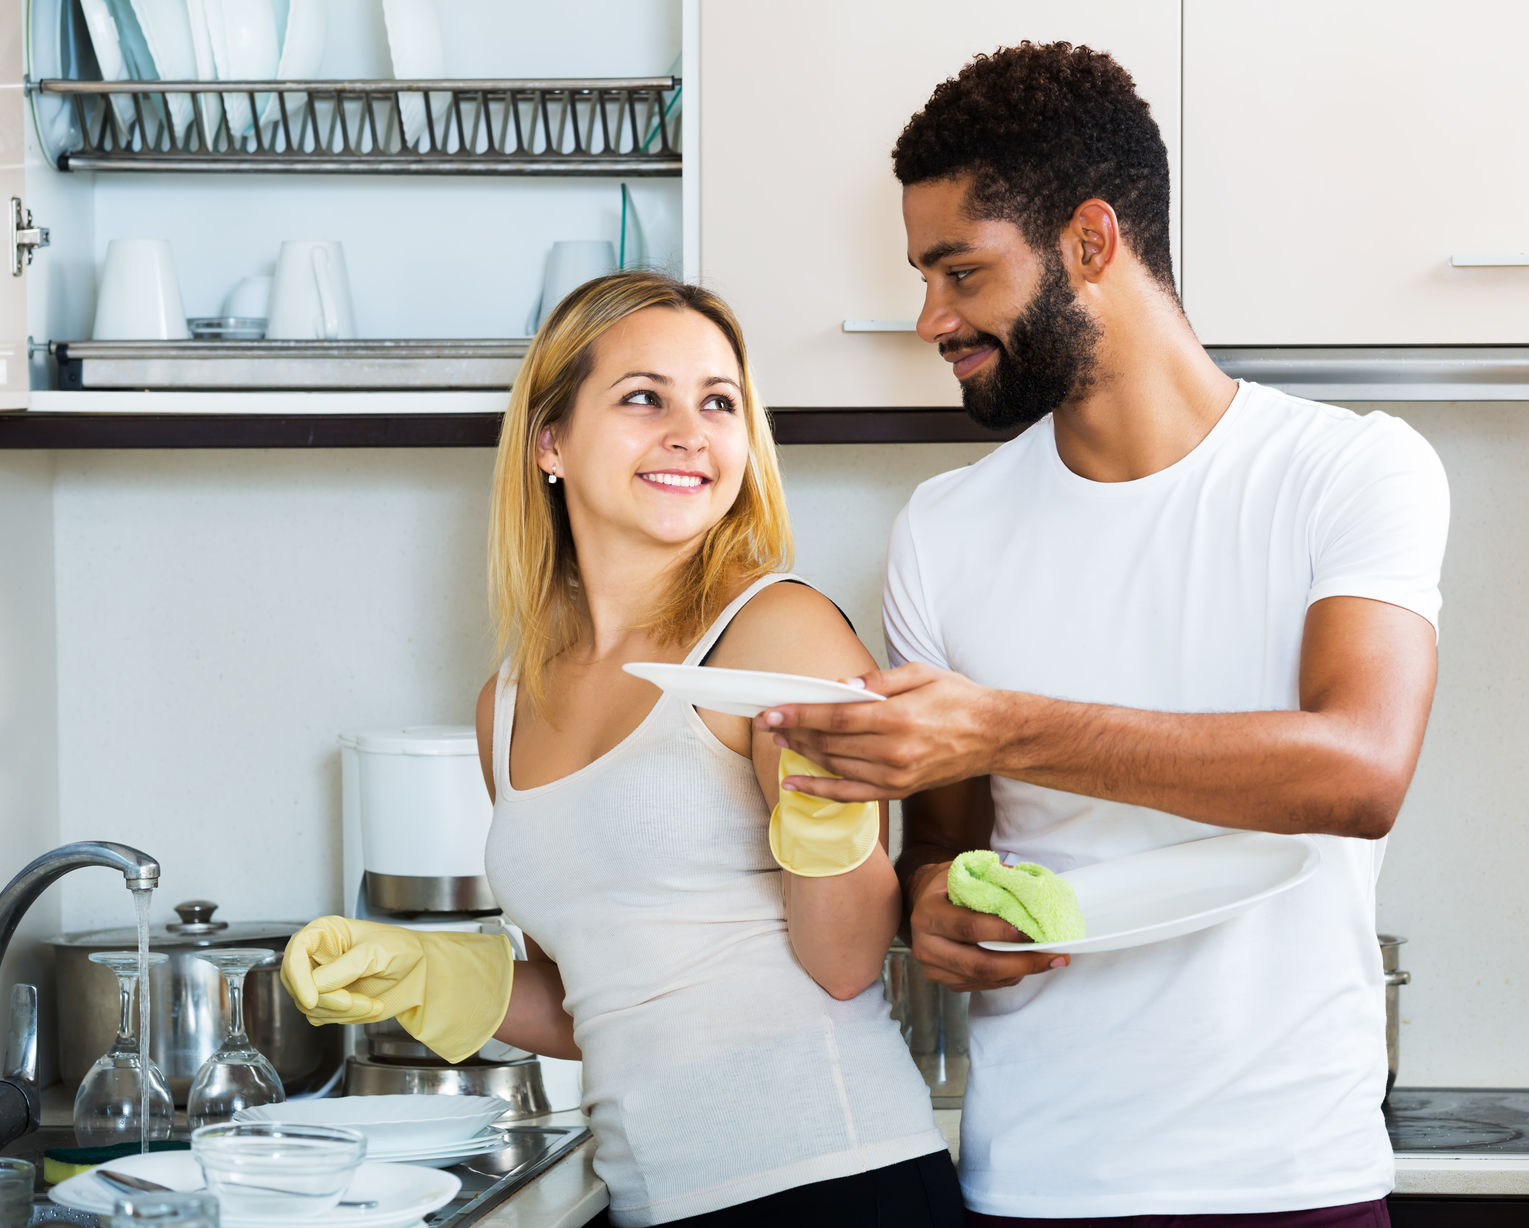 when should you cook for a guy youre dating